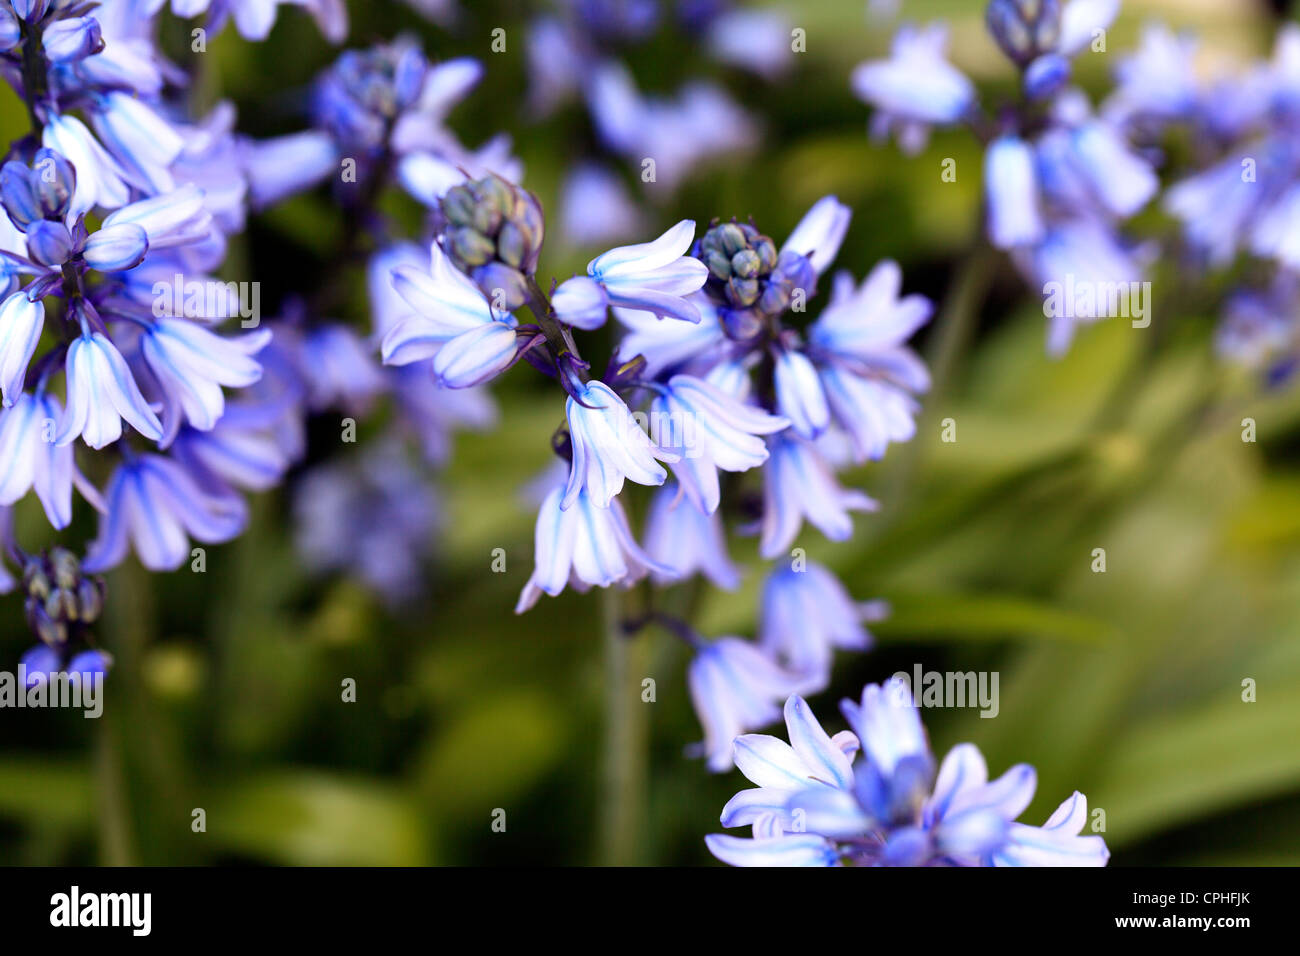 Bluebell flowers in a garden Stock Photo